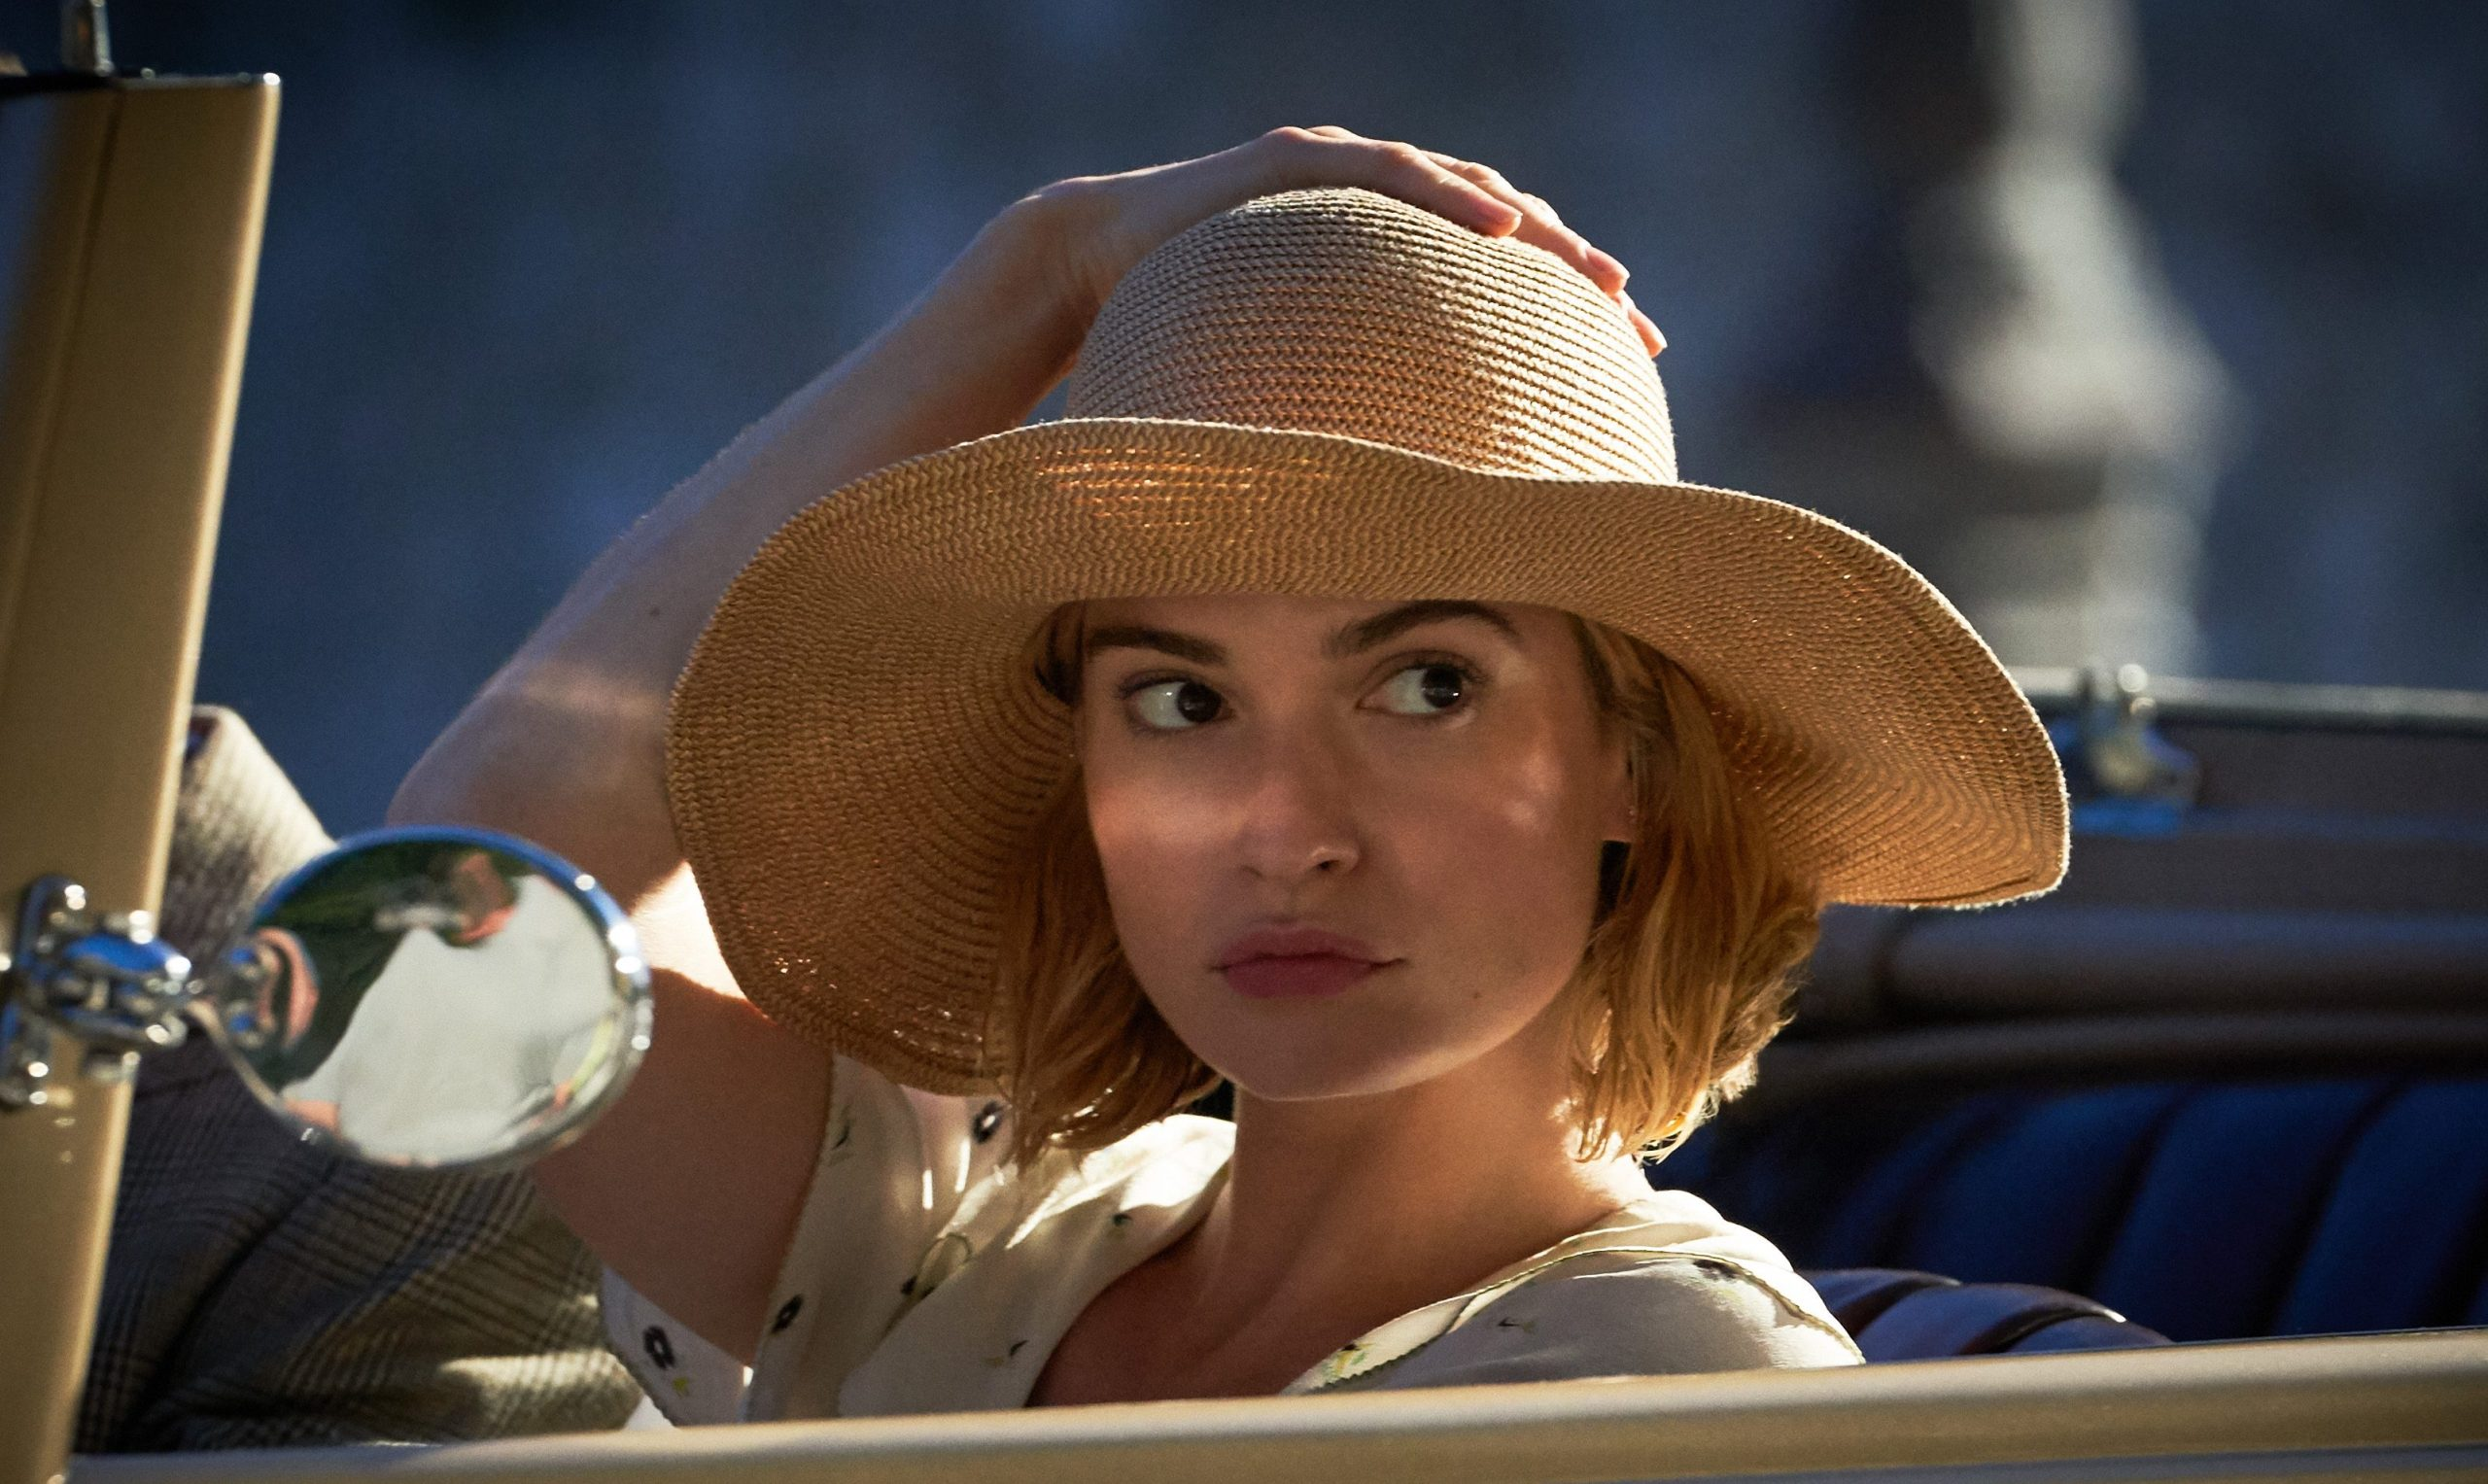 REBECCA REVIEW: A TEPID ADAPTATION THAT WON'T GIVE YOU SLEEPLESS NIGHTS